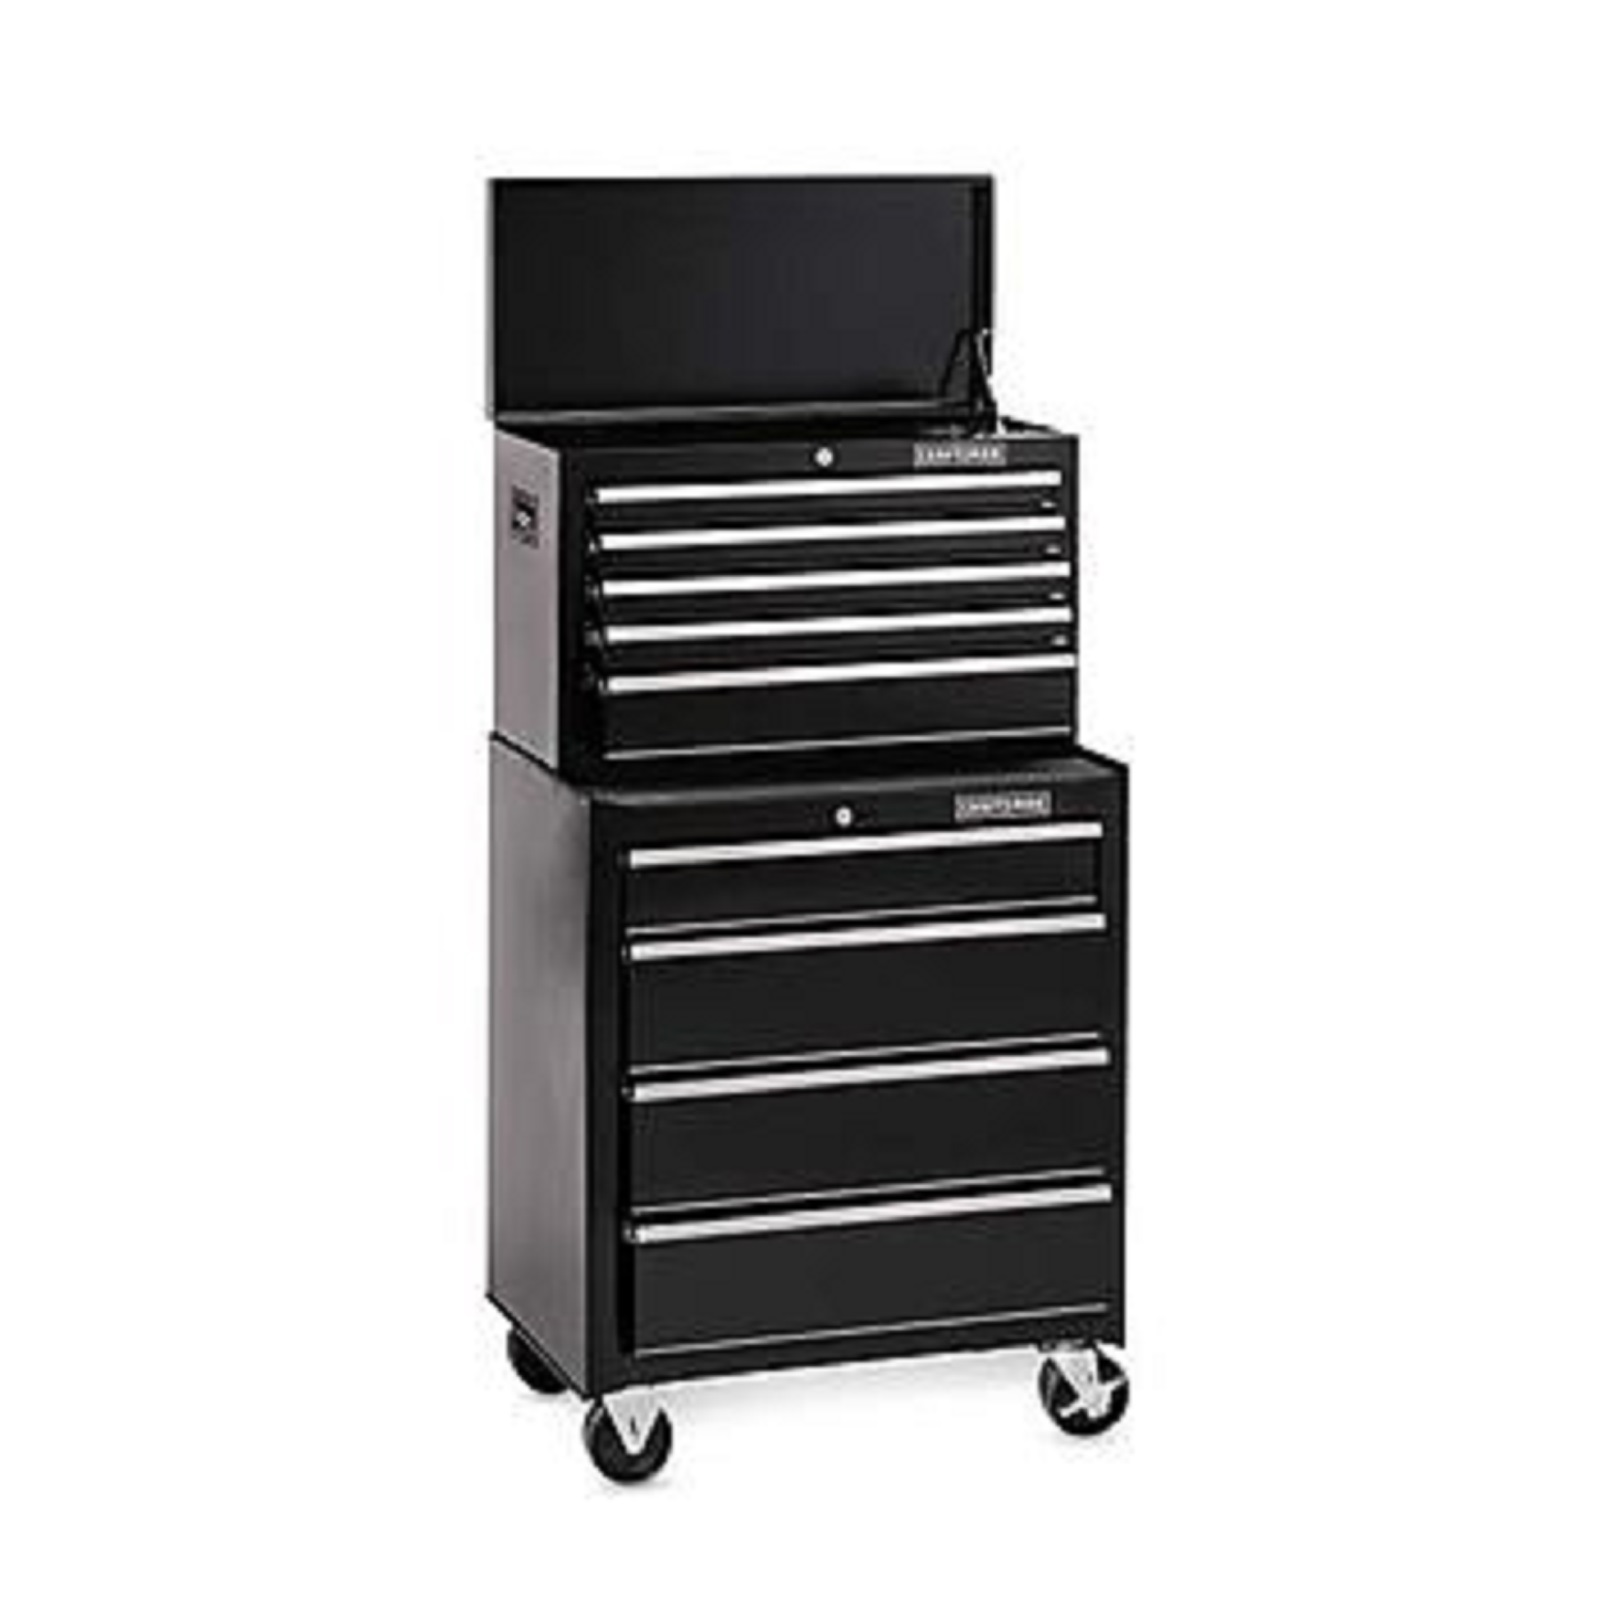 Craftsman 26 in. Wide 9-Drawer Ball-Bearing GRIPLATCH Combo